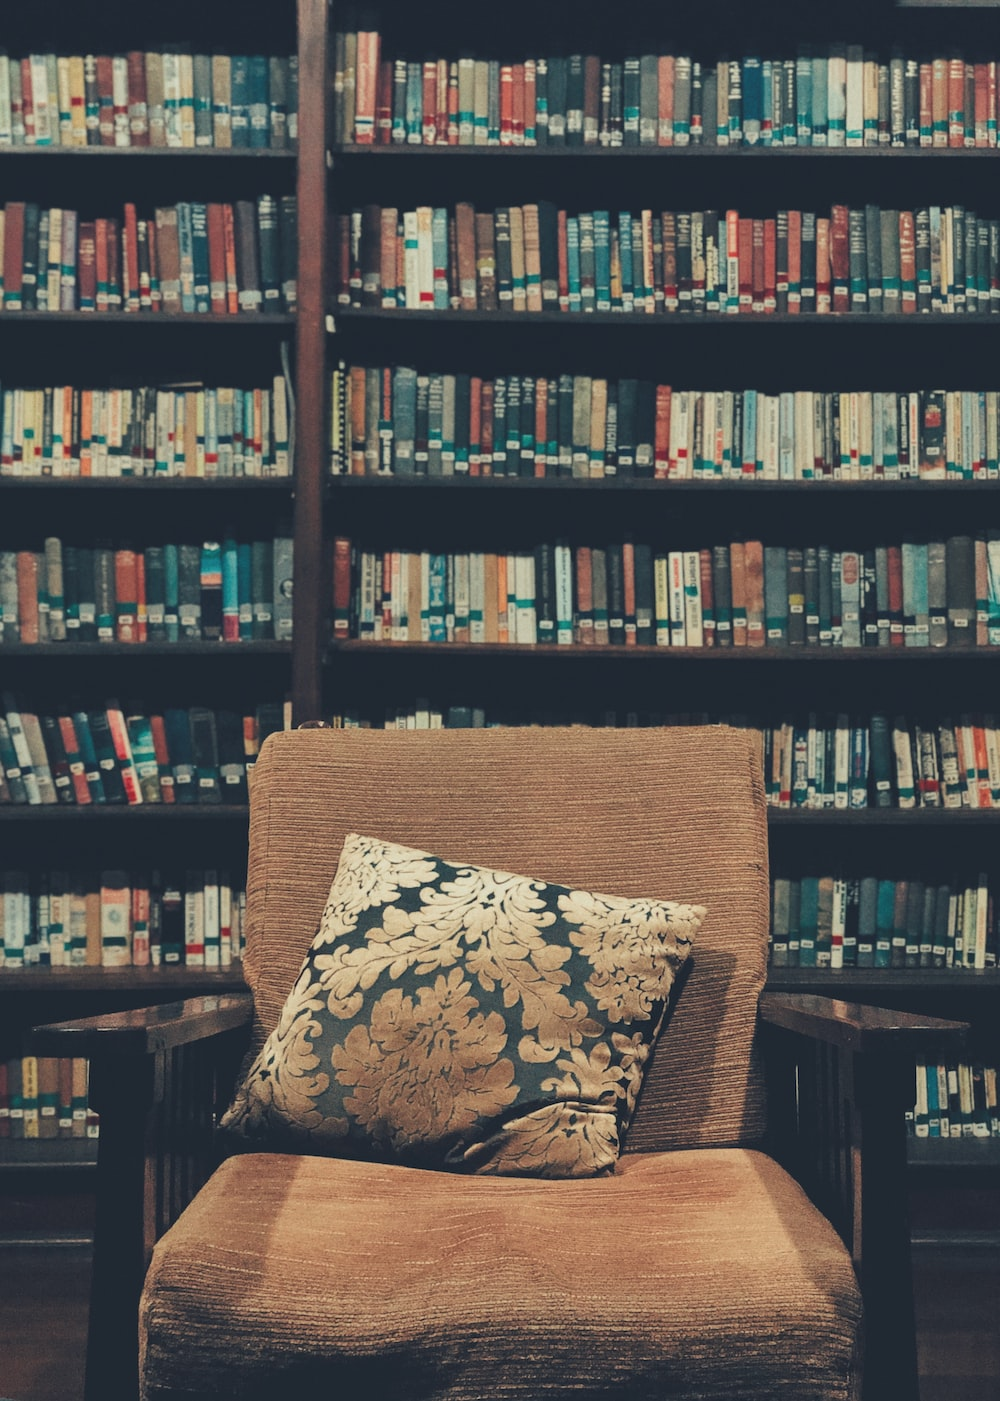 brown wooden armchair with books behind